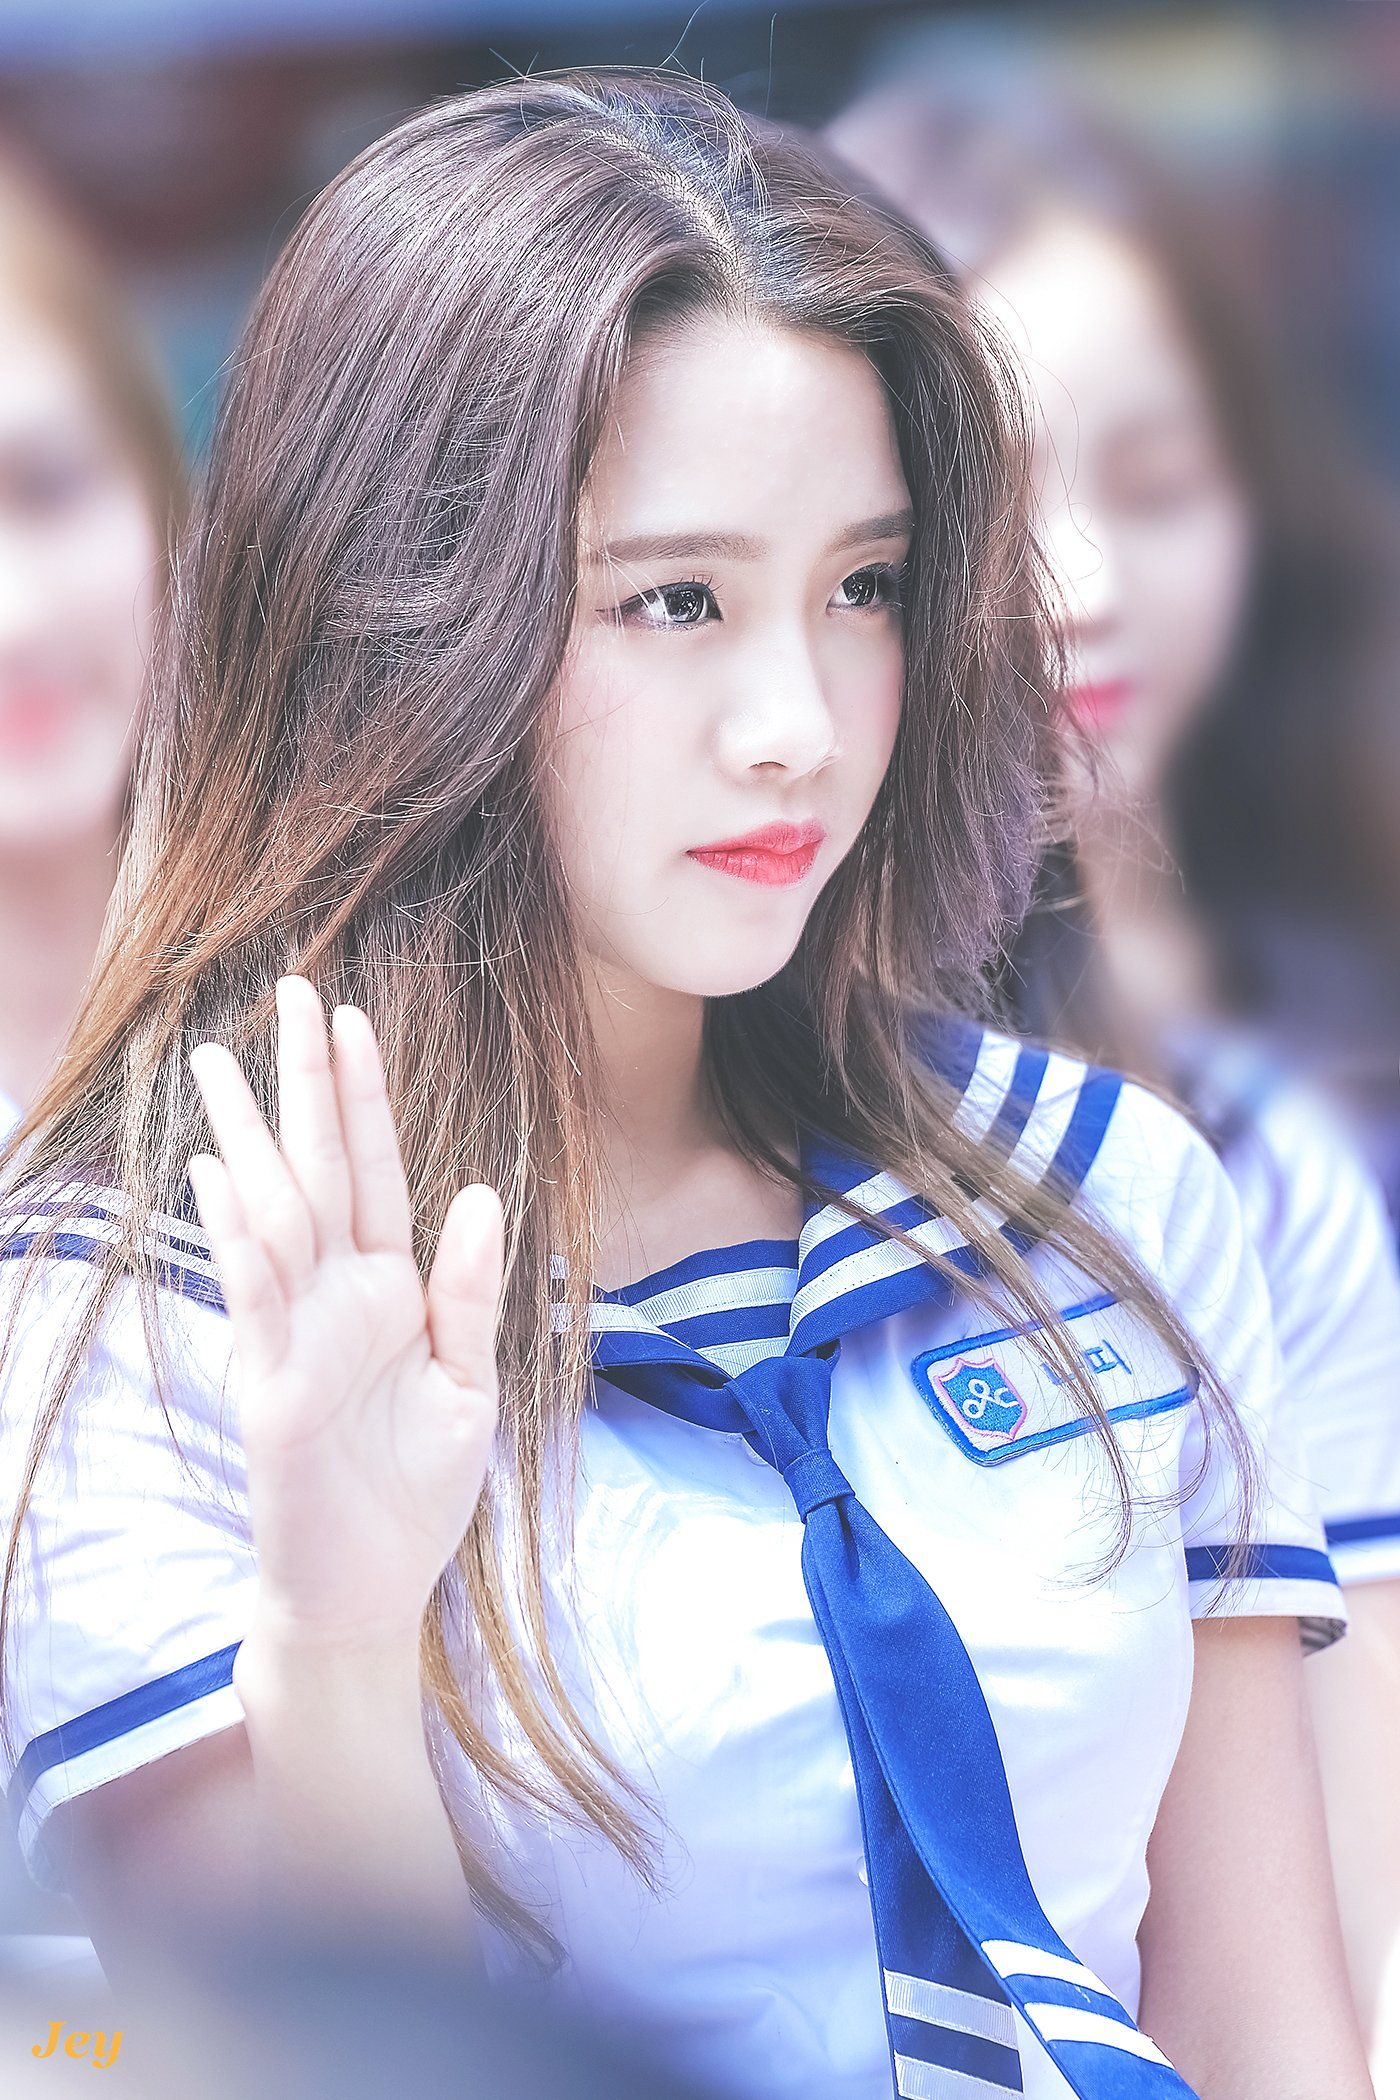 Idolschool Nati Ex Jyp Sixteen Pop Hair Beauty Girl